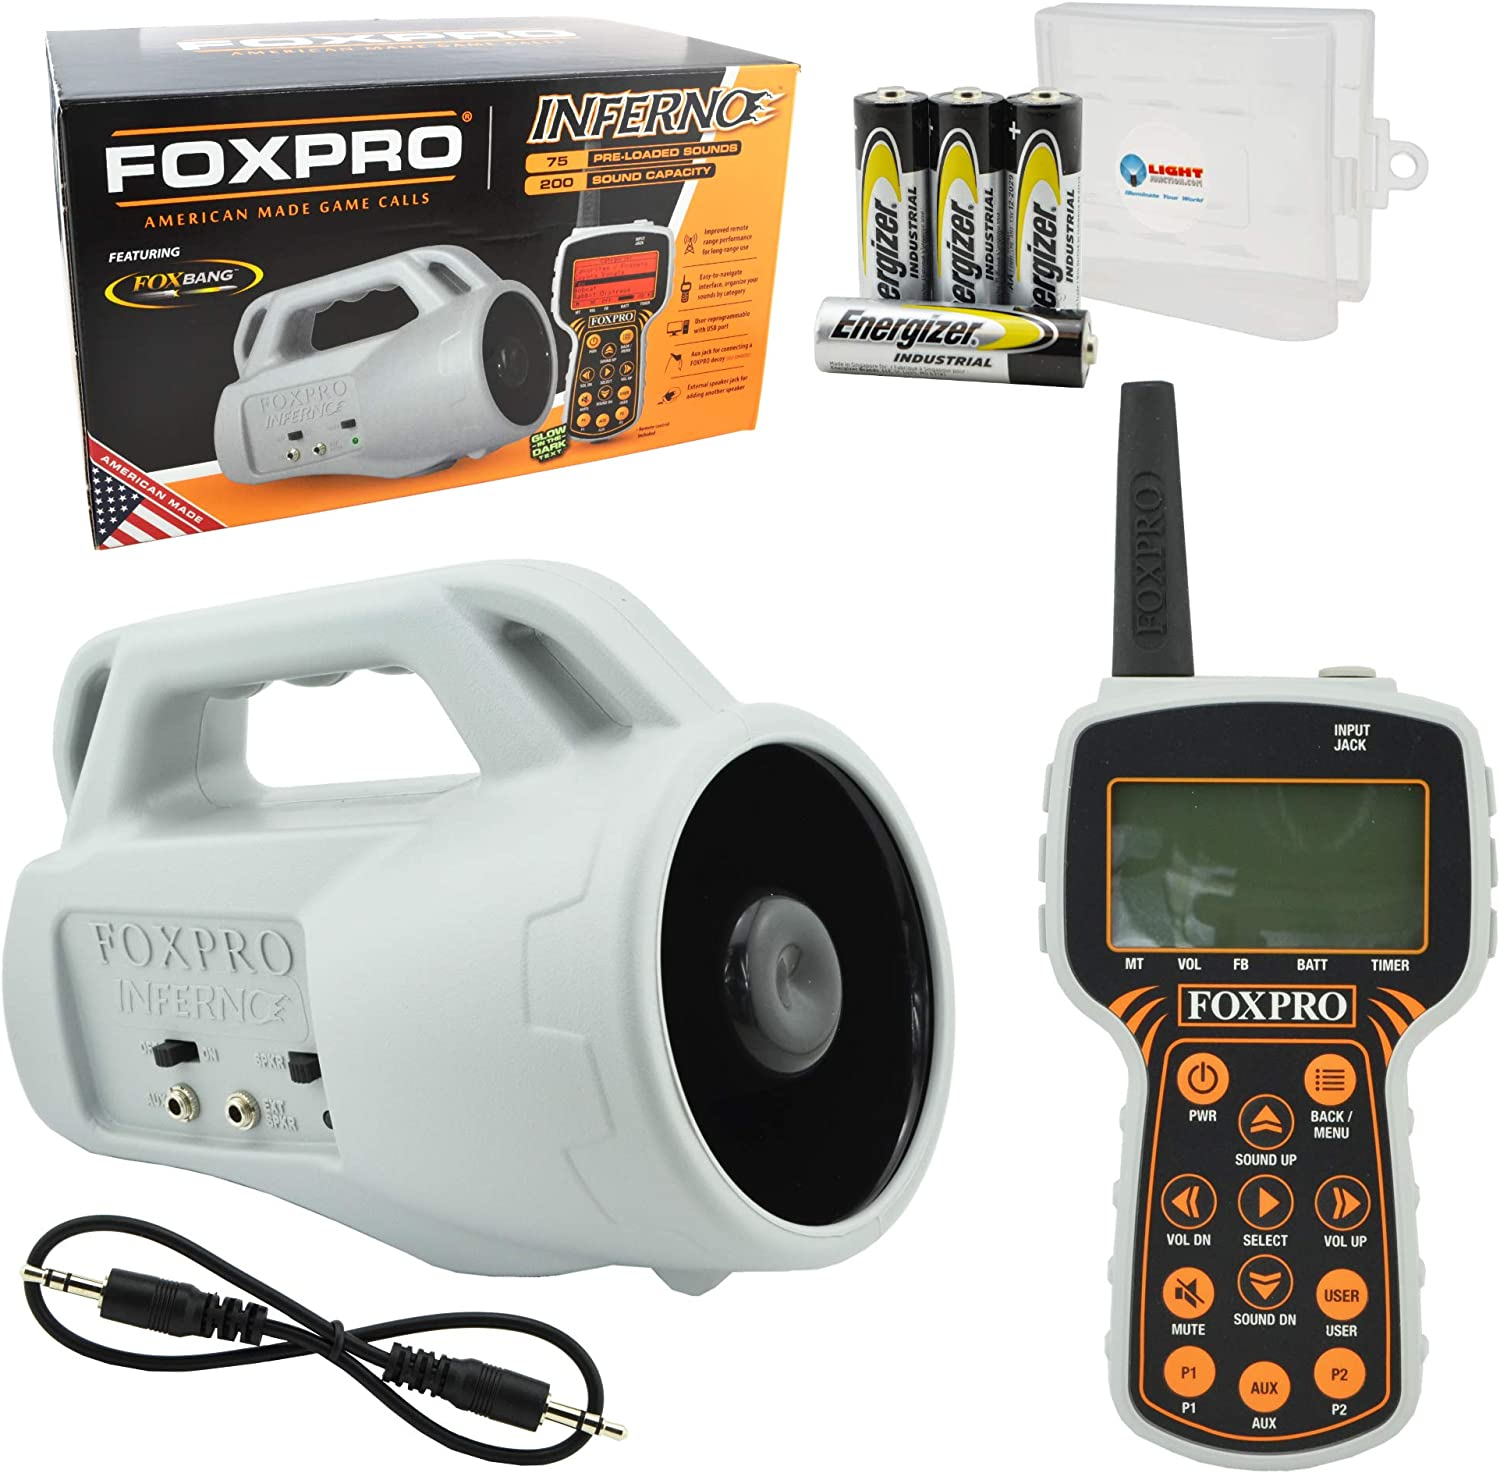 FOXPRO Inferno Hunting Predator Game Calls Electronic American Made Pack Bundle with 4 AA Batteries and Lightjunction Battery Box